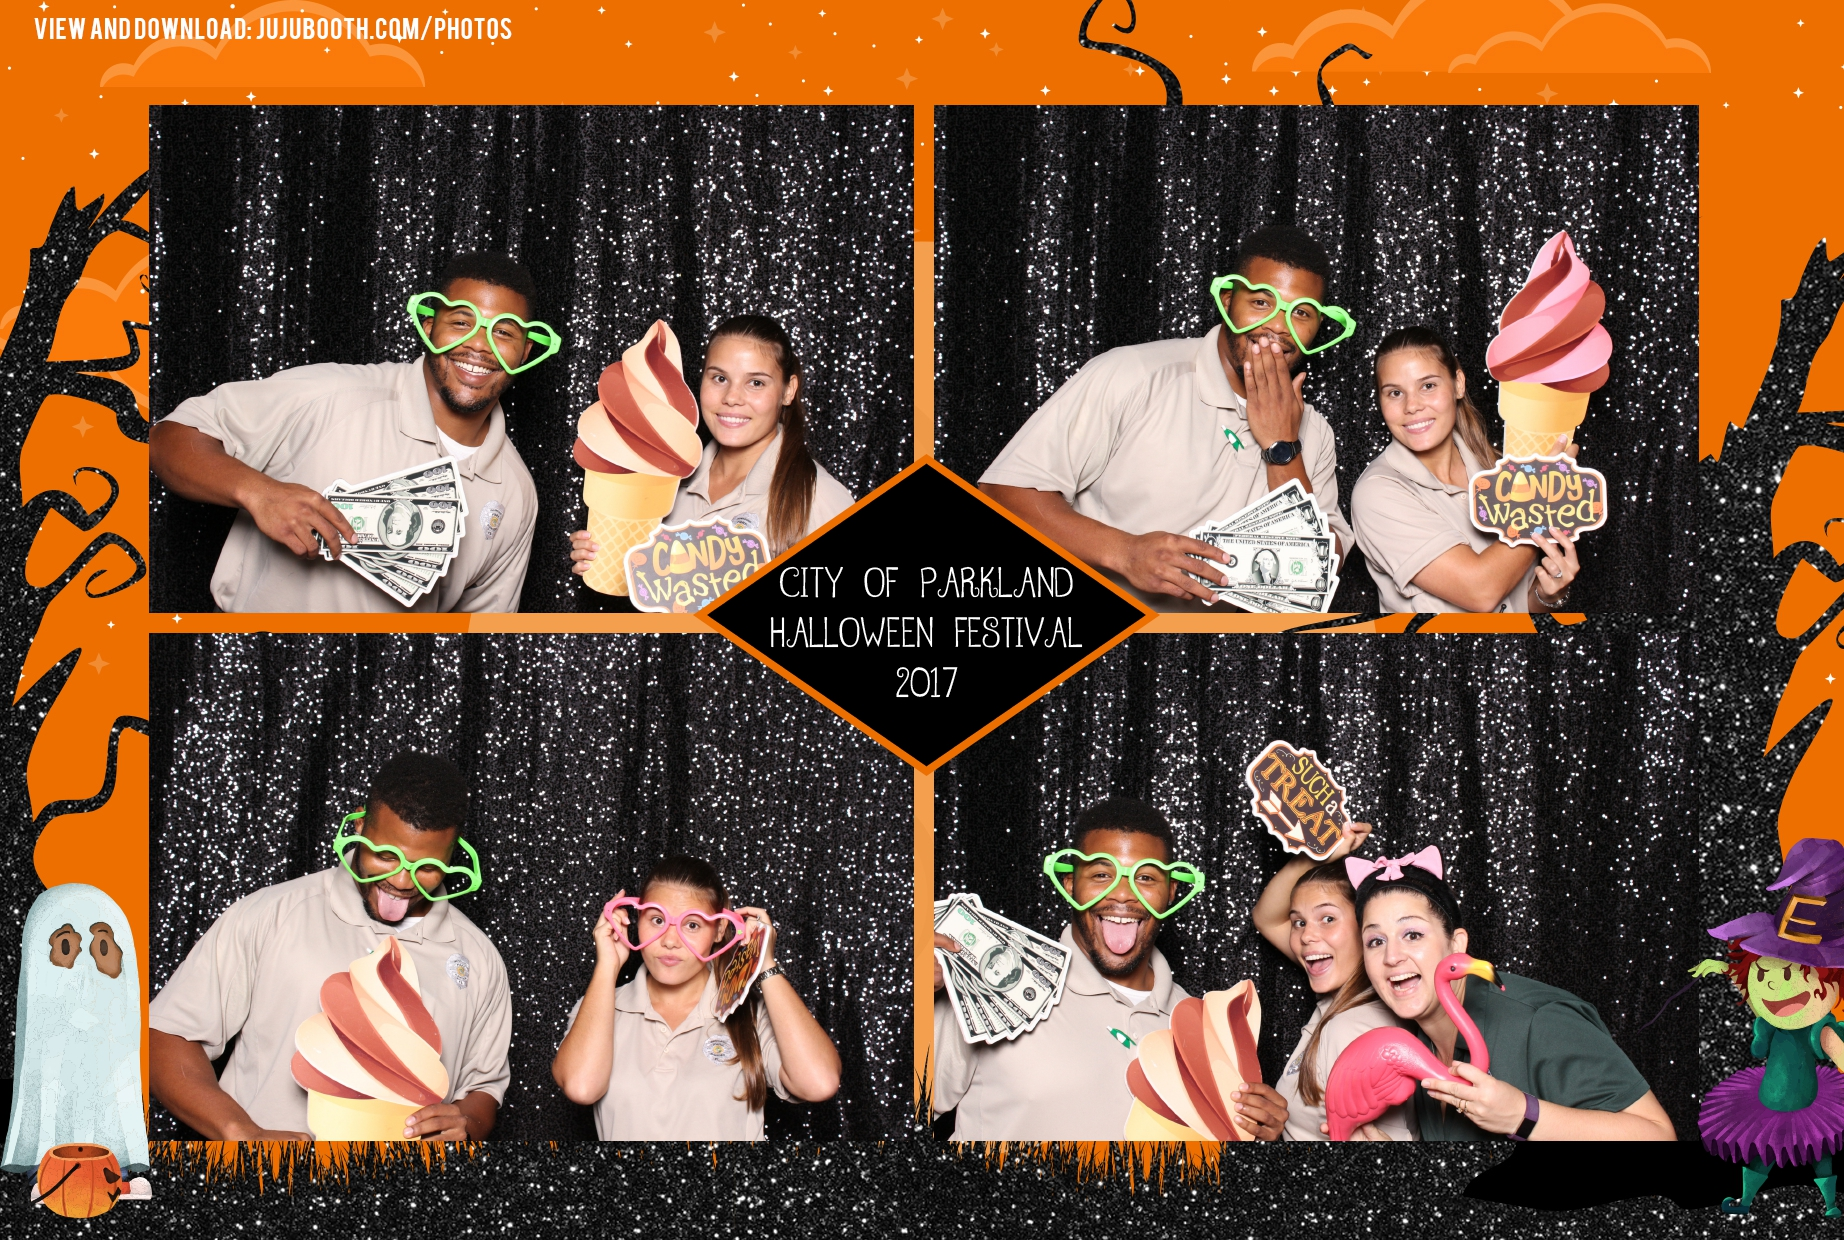 Parkland Florida Photo Booth